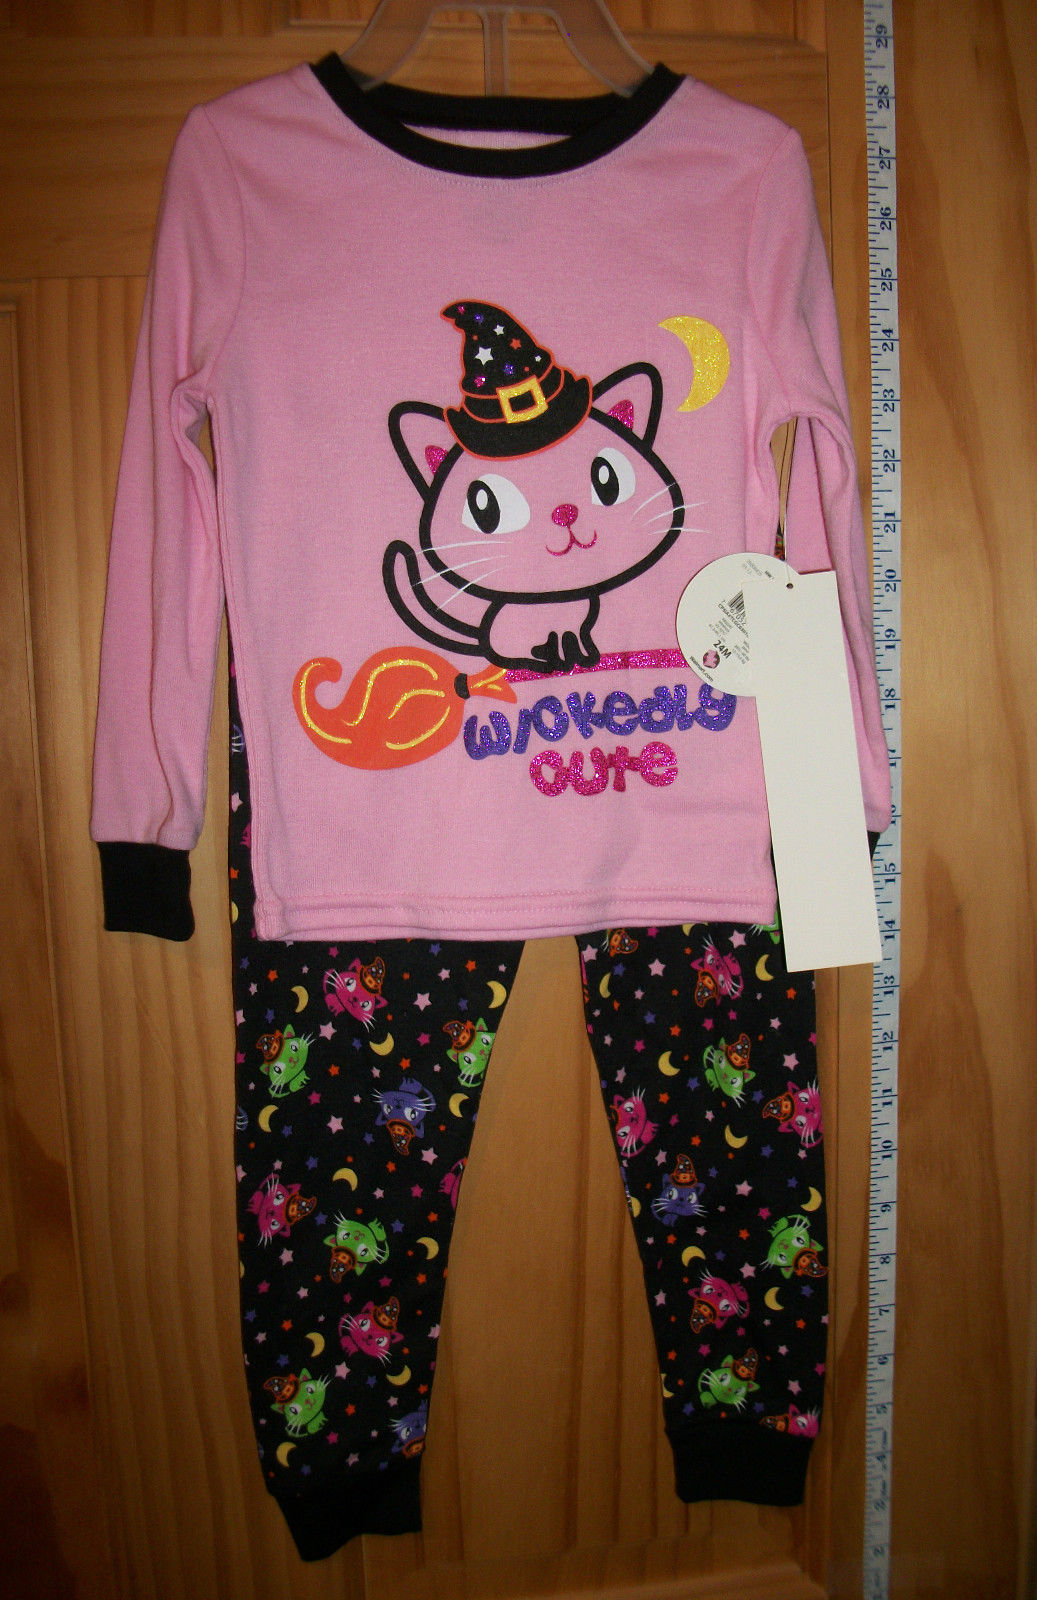 fashion holiday baby clothes 24m infant halloween costume pink wickedly cute cat